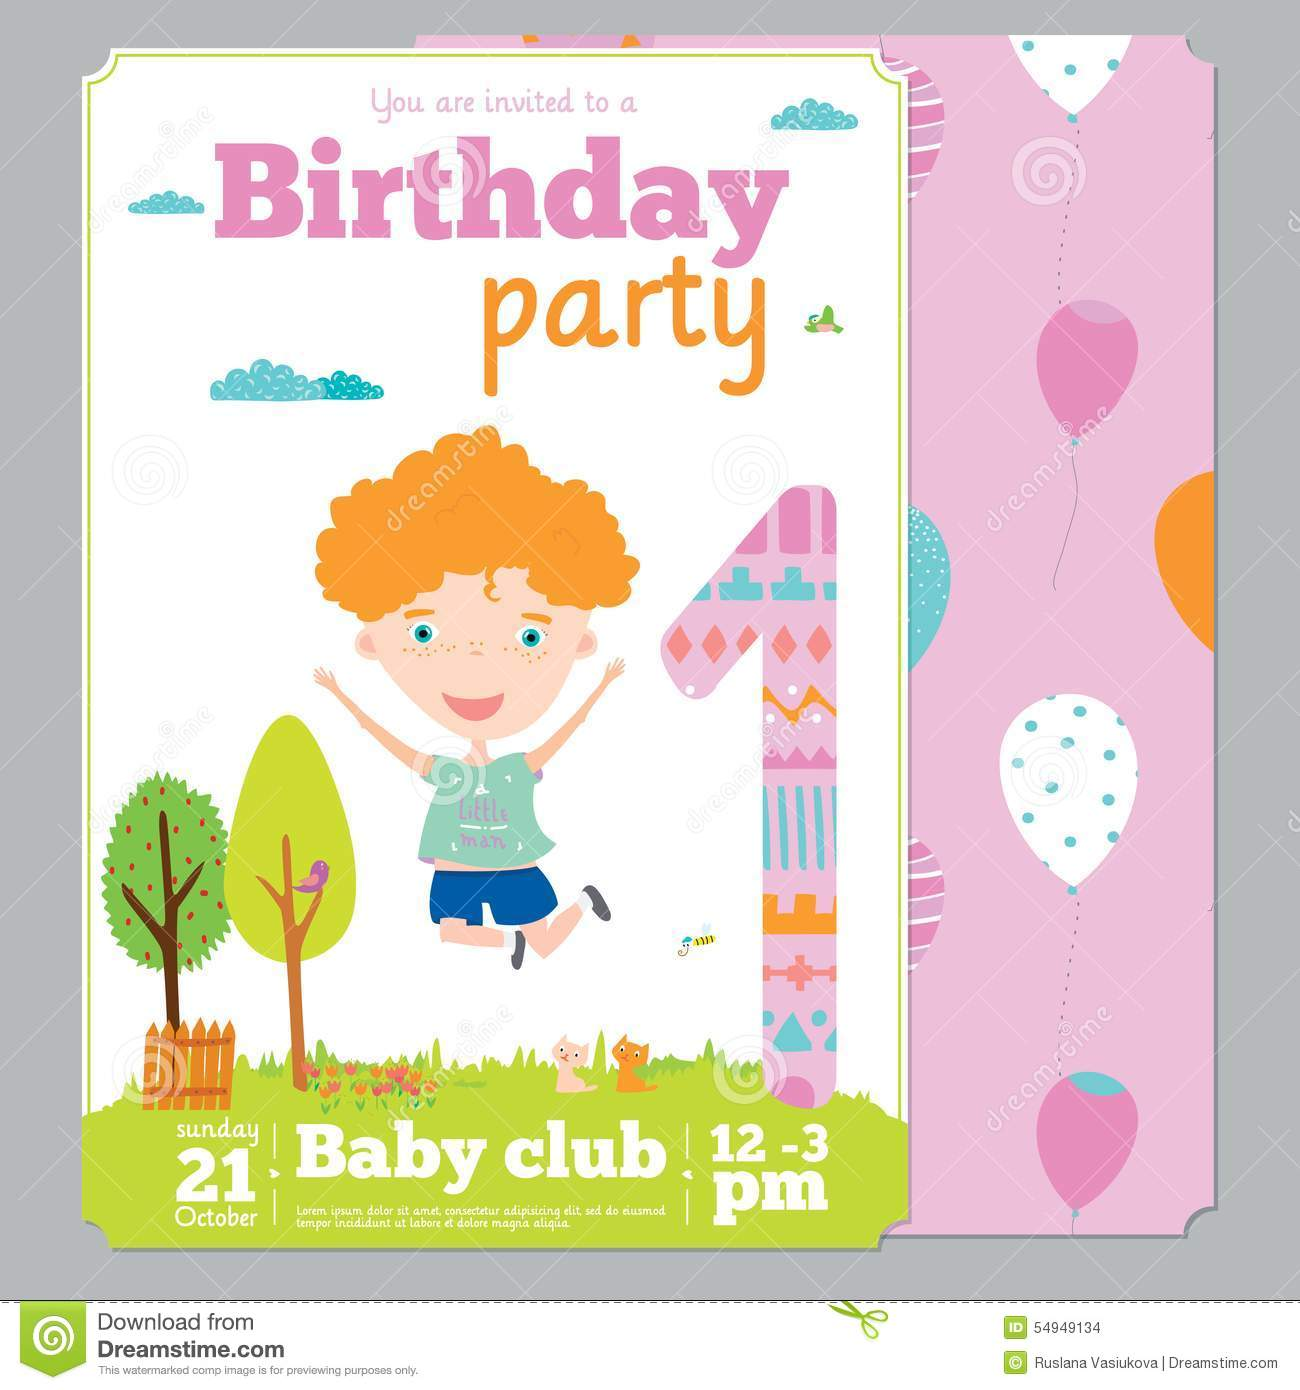 Birthday party invitation card template with cute stock vector download birthday party invitation card template with cute stock vector illustration of cute festive stopboris Image collections